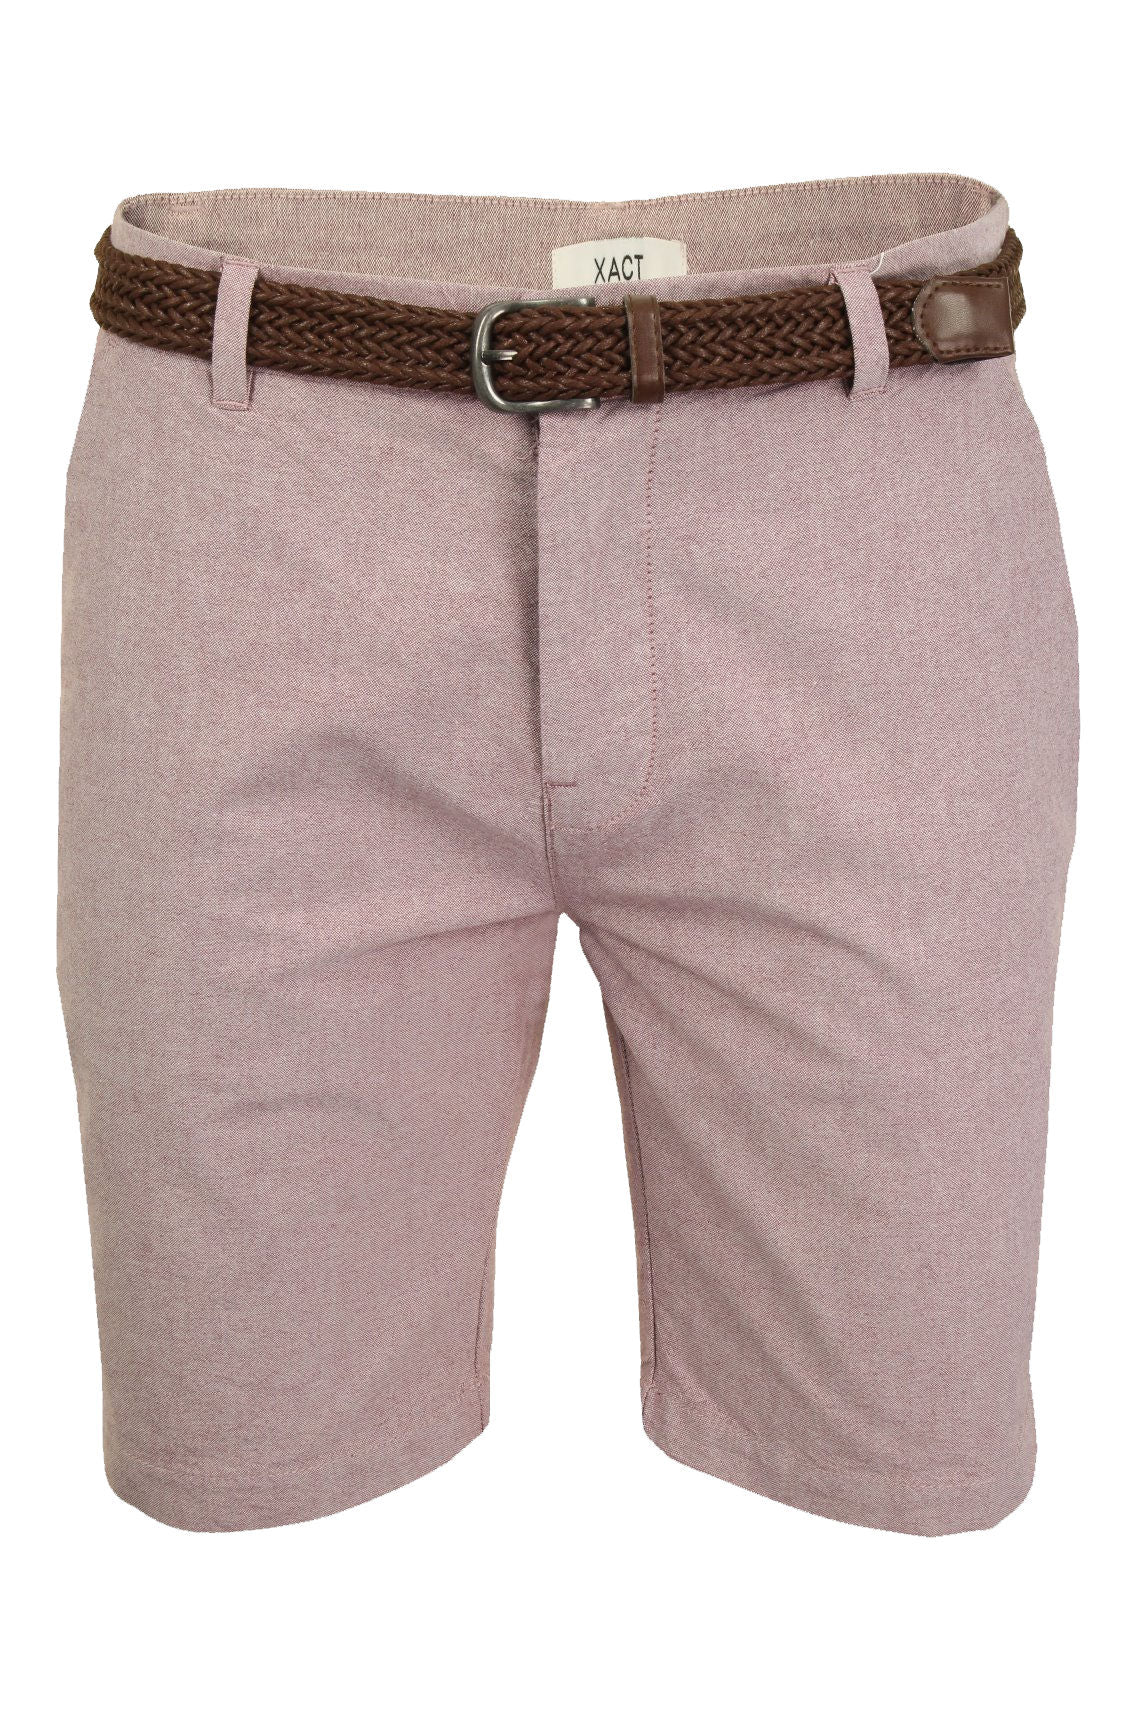 Mens Oxford Chino Shorts by Xact with Belt-Main Image